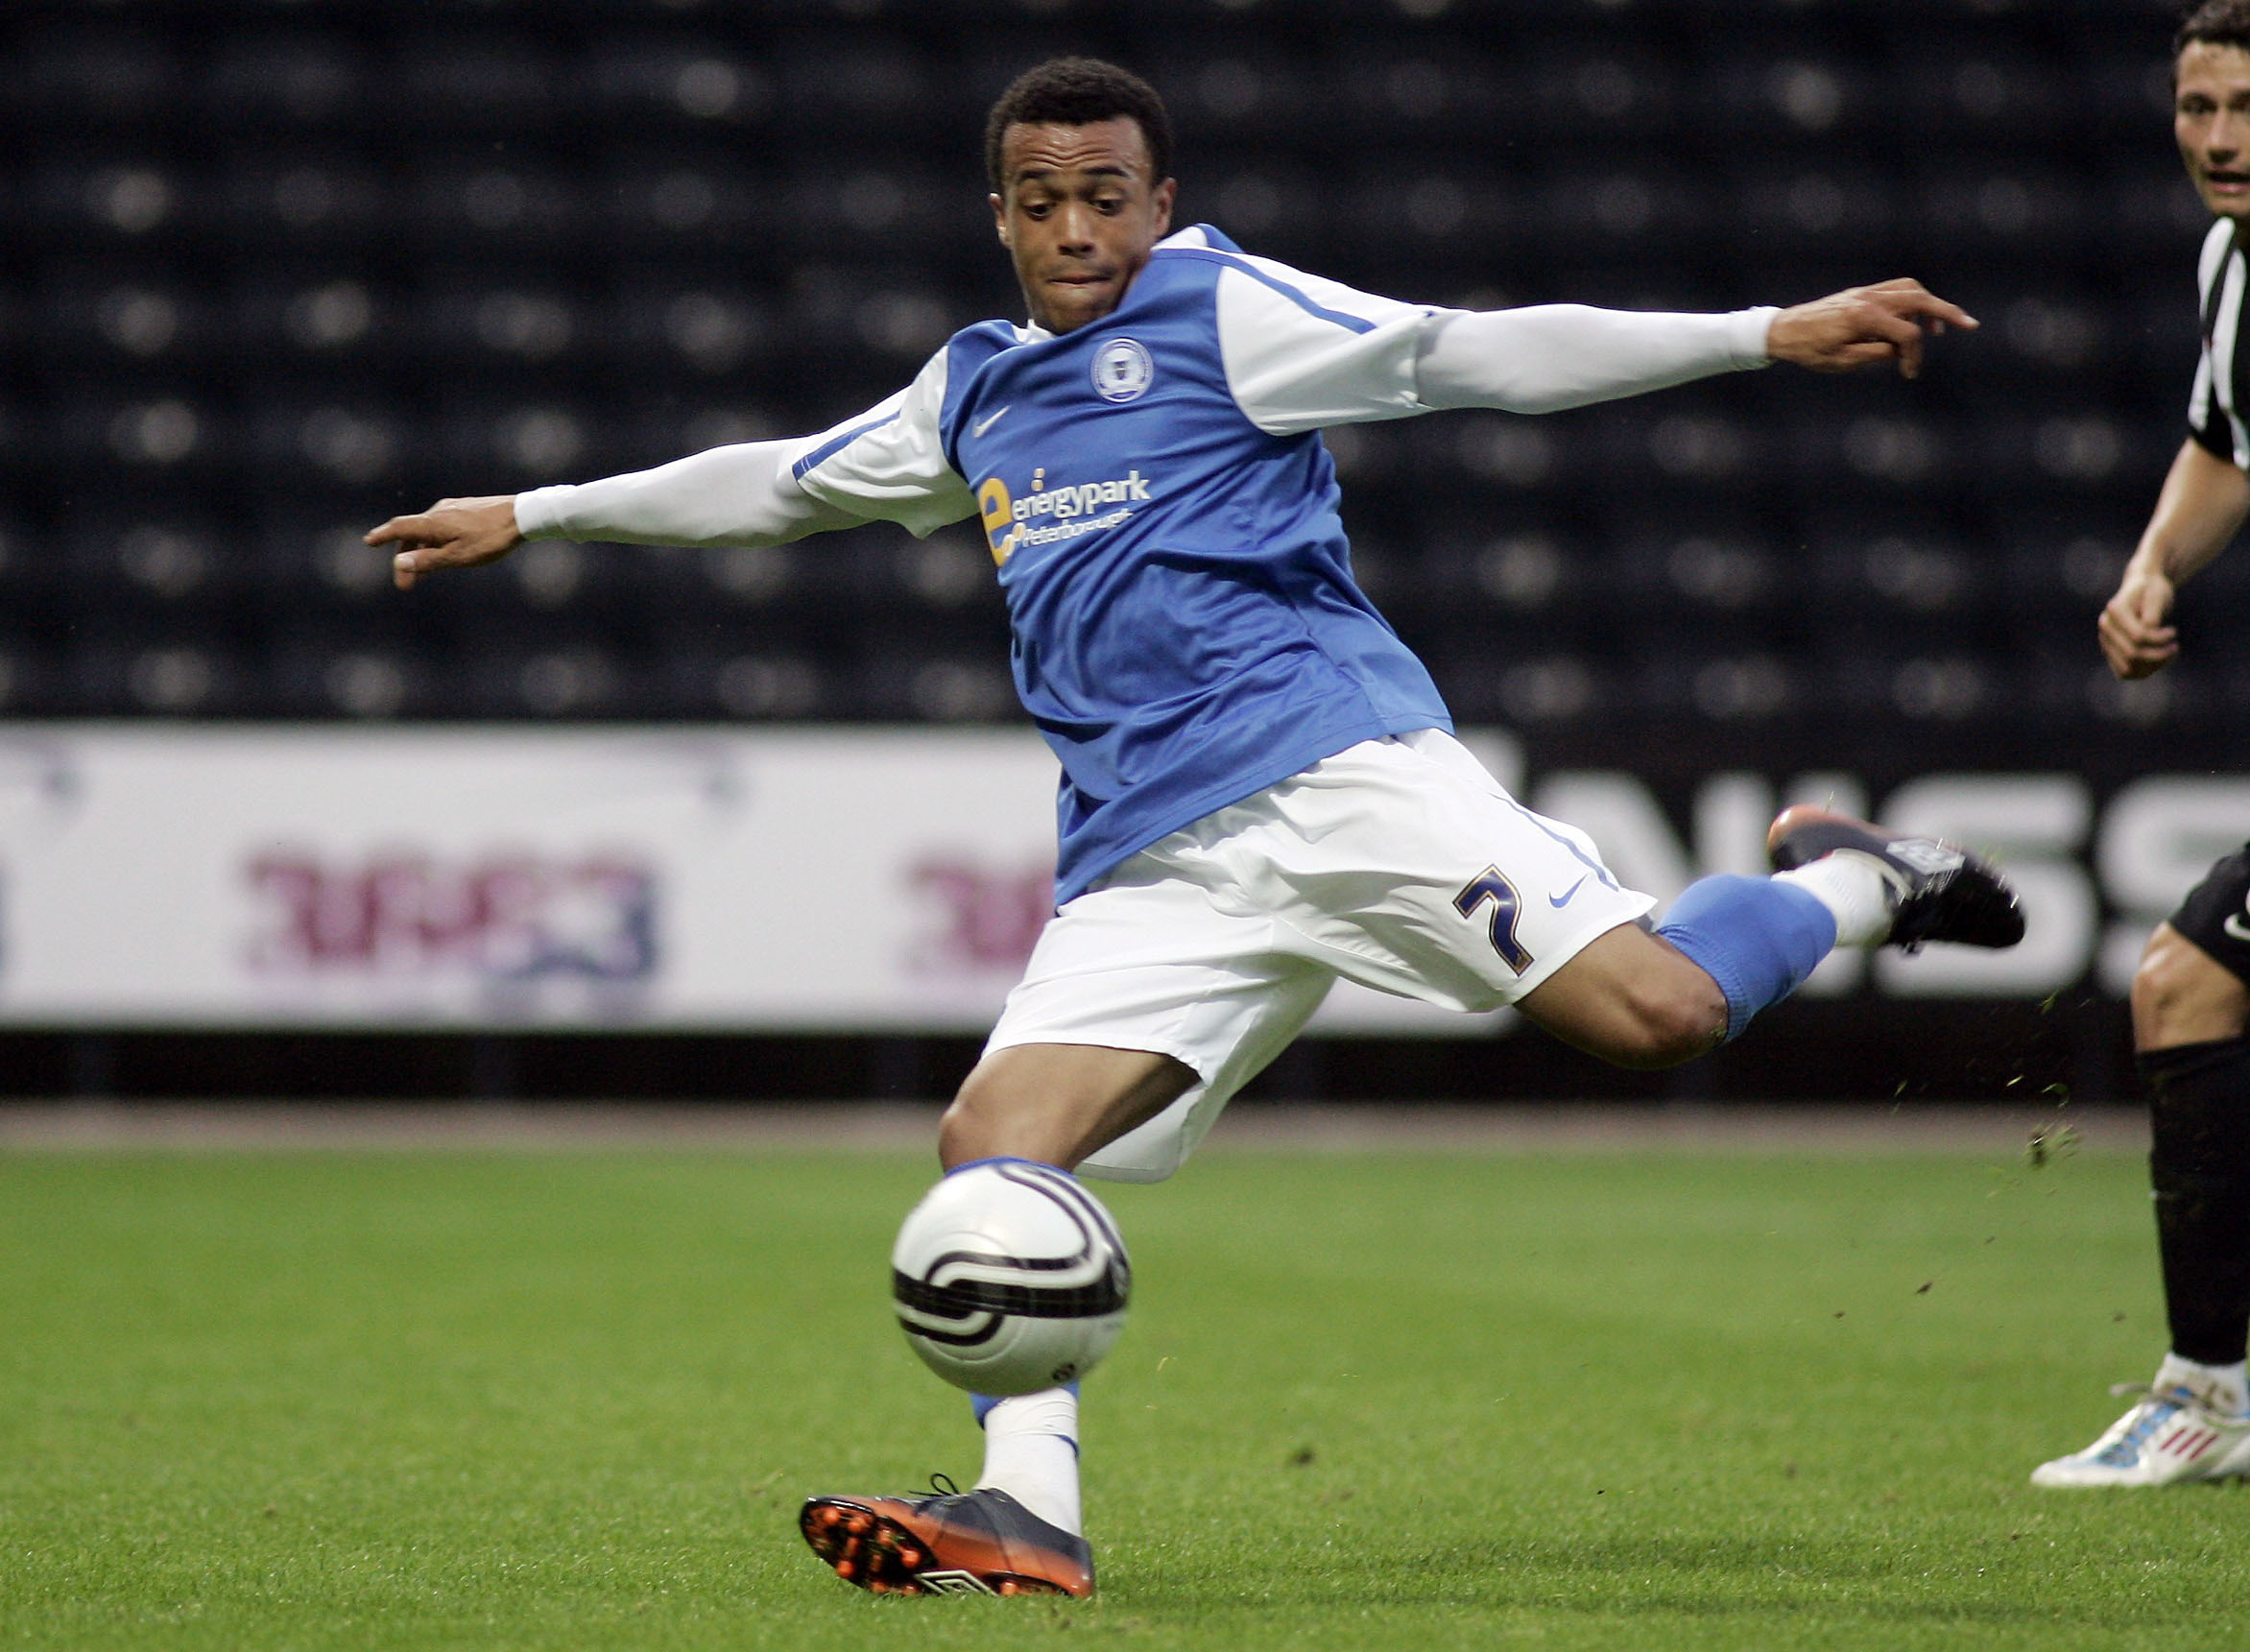 Nicky Ajose playing for Posh during pre-season